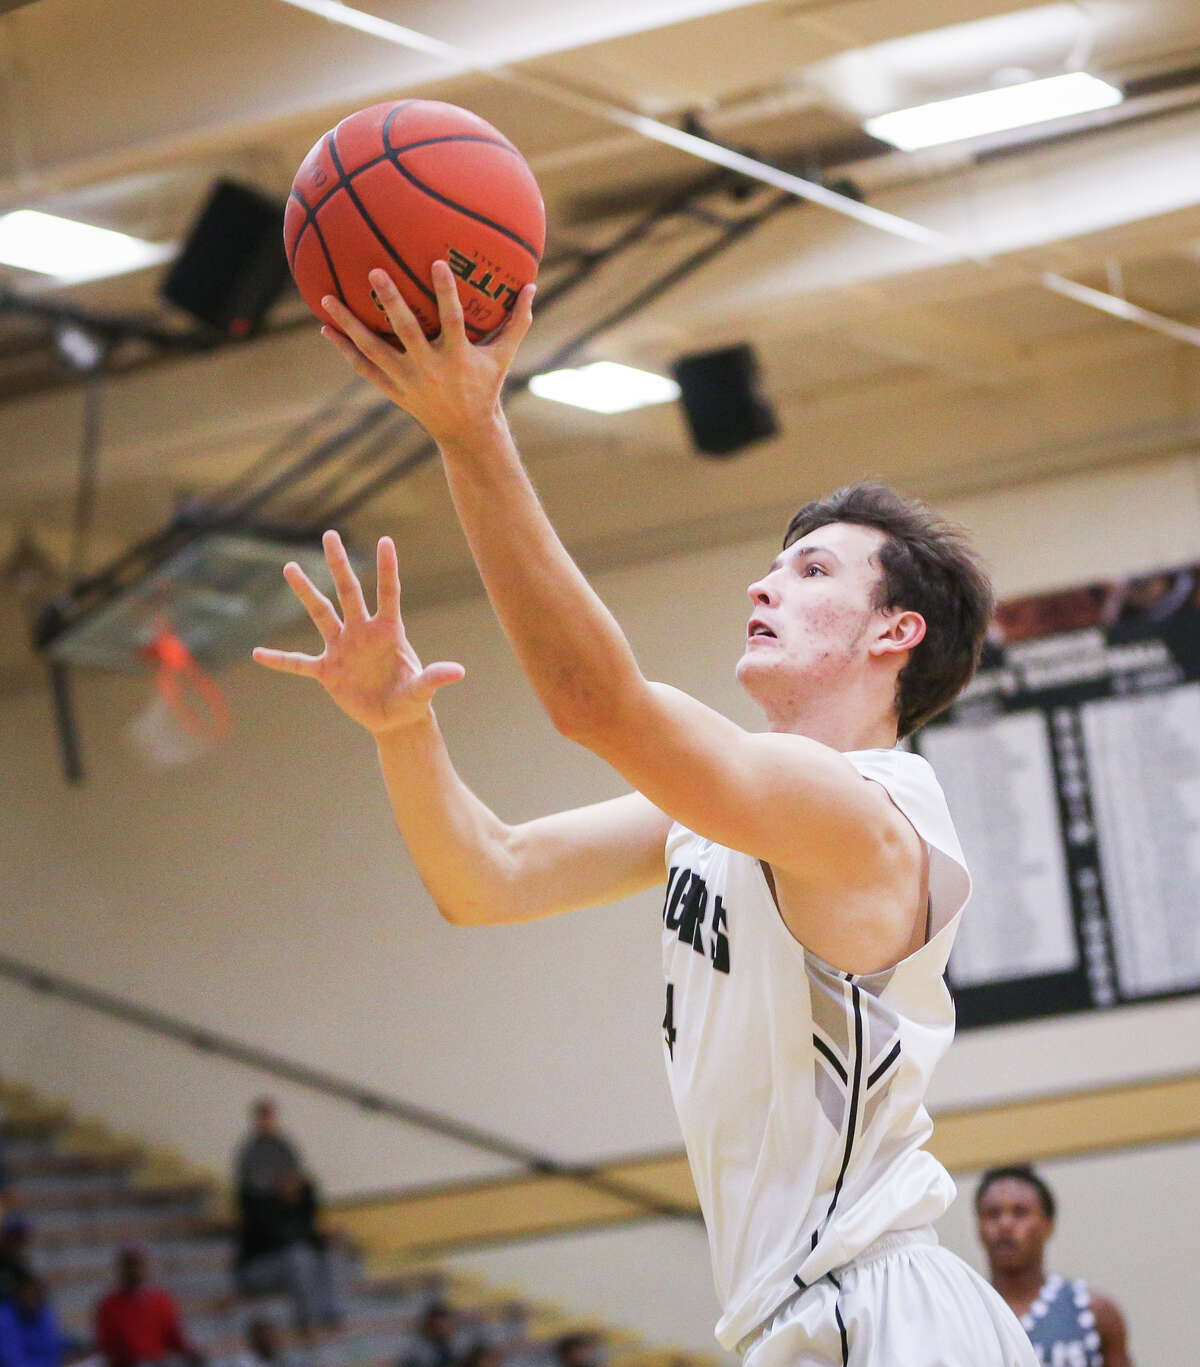 ConroeÂ?'s Joshua Berry (44) shoots during the varsity boys basketball game against Willis on Monday, Dec. 19, 2016, at Conroe High School. (Michael Minasi)